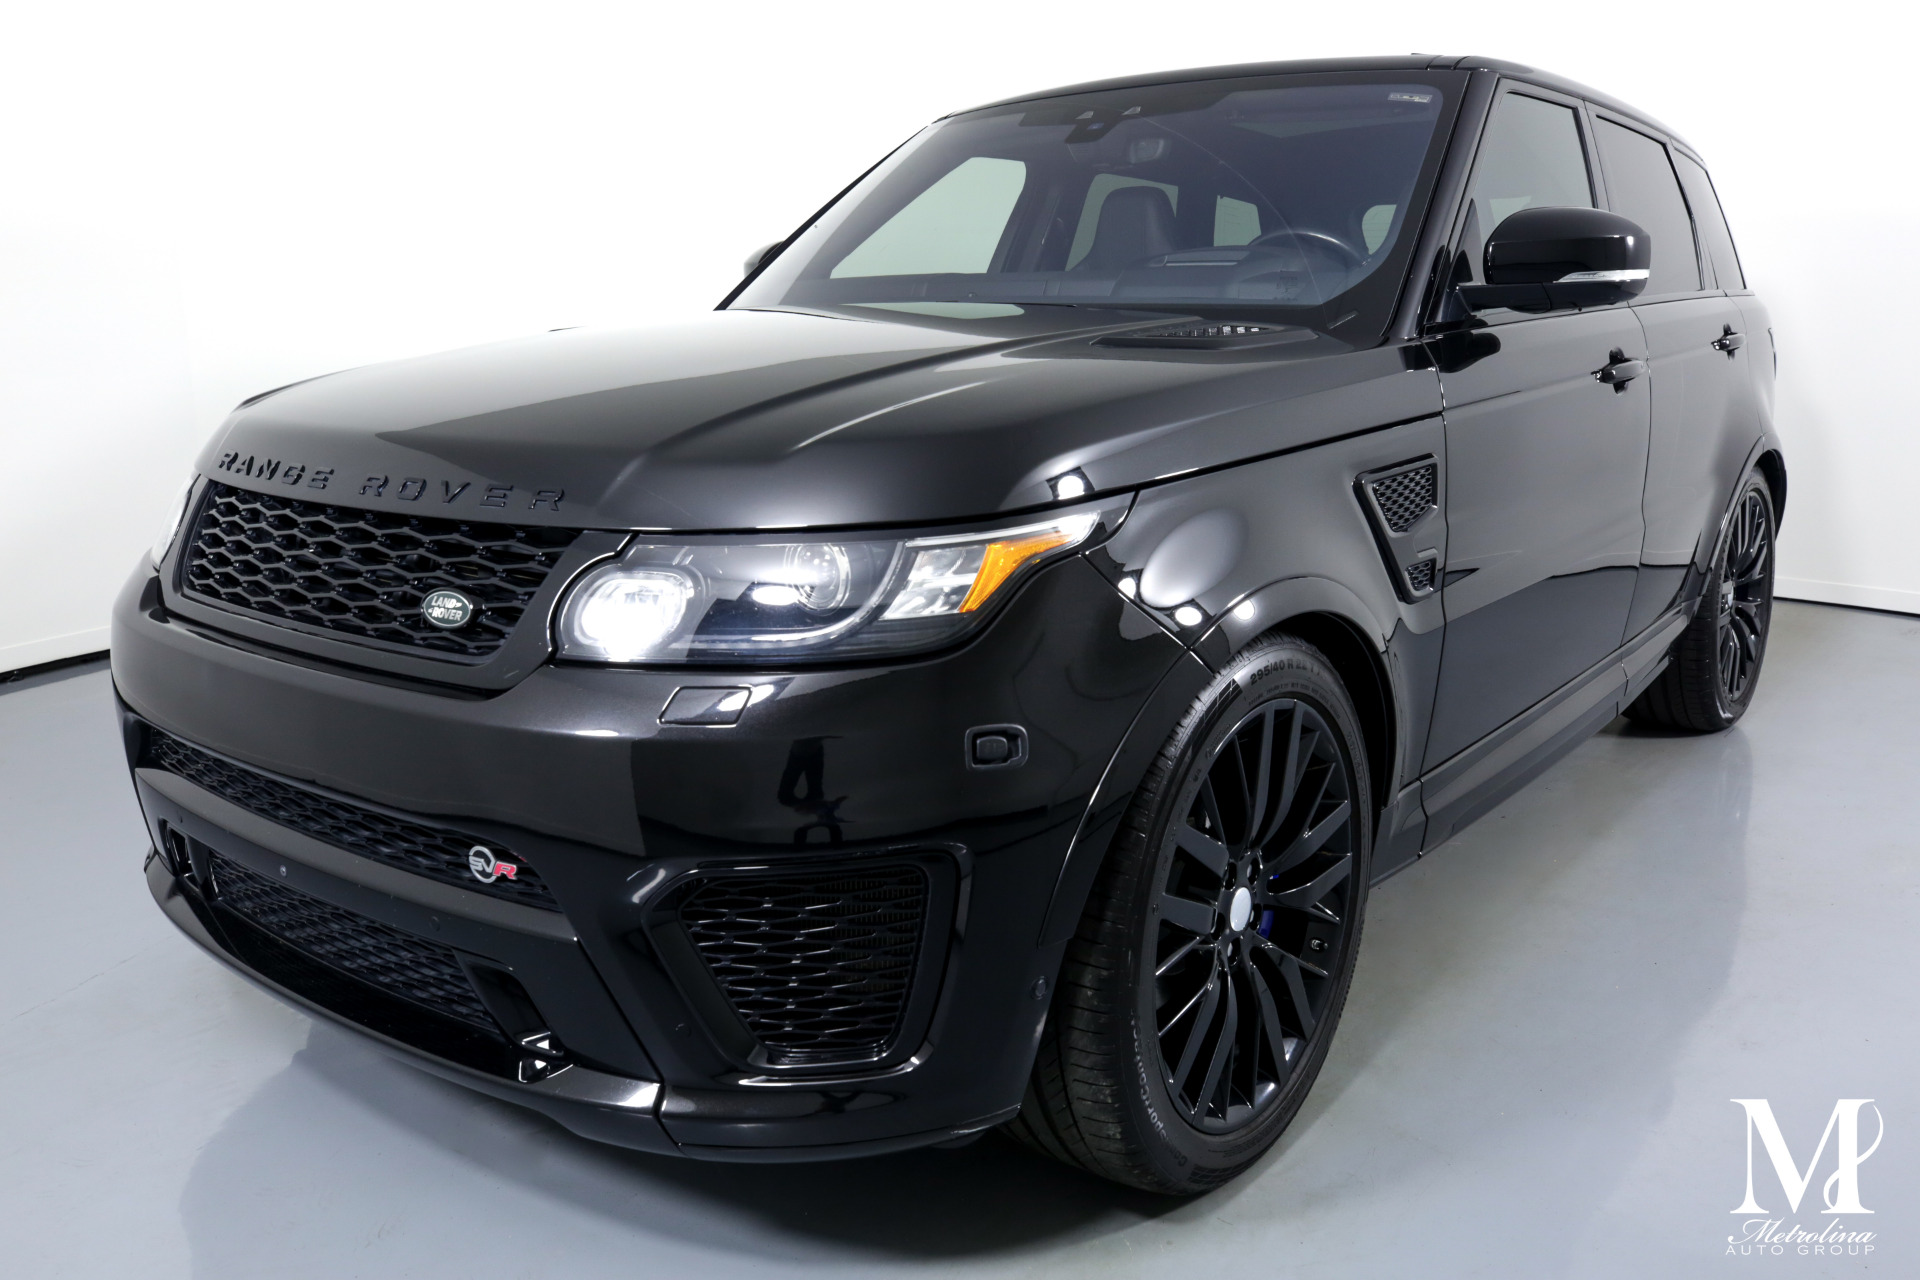 Used 2017 Land Rover Range Rover Sport SVR for sale $69,996 at Metrolina Auto Group in Charlotte NC 28217 - 4